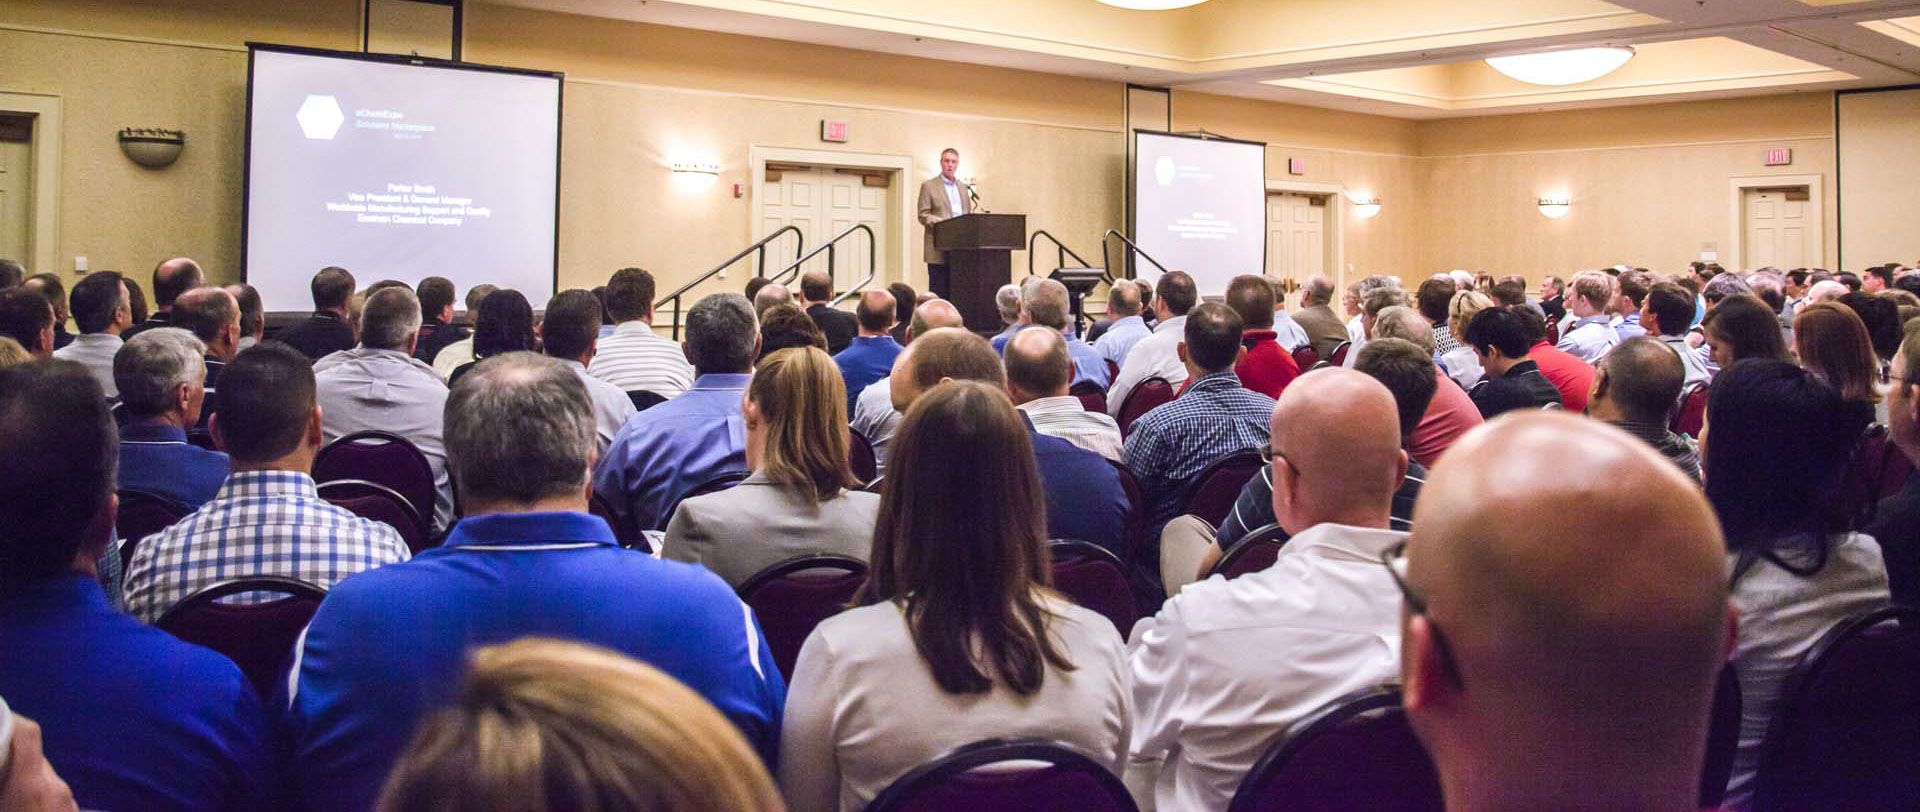 A standing room only packed keynote session heard industrial and supplier perspectives on improving innovation, safety and plant reliability to accelerate manufacturing growth